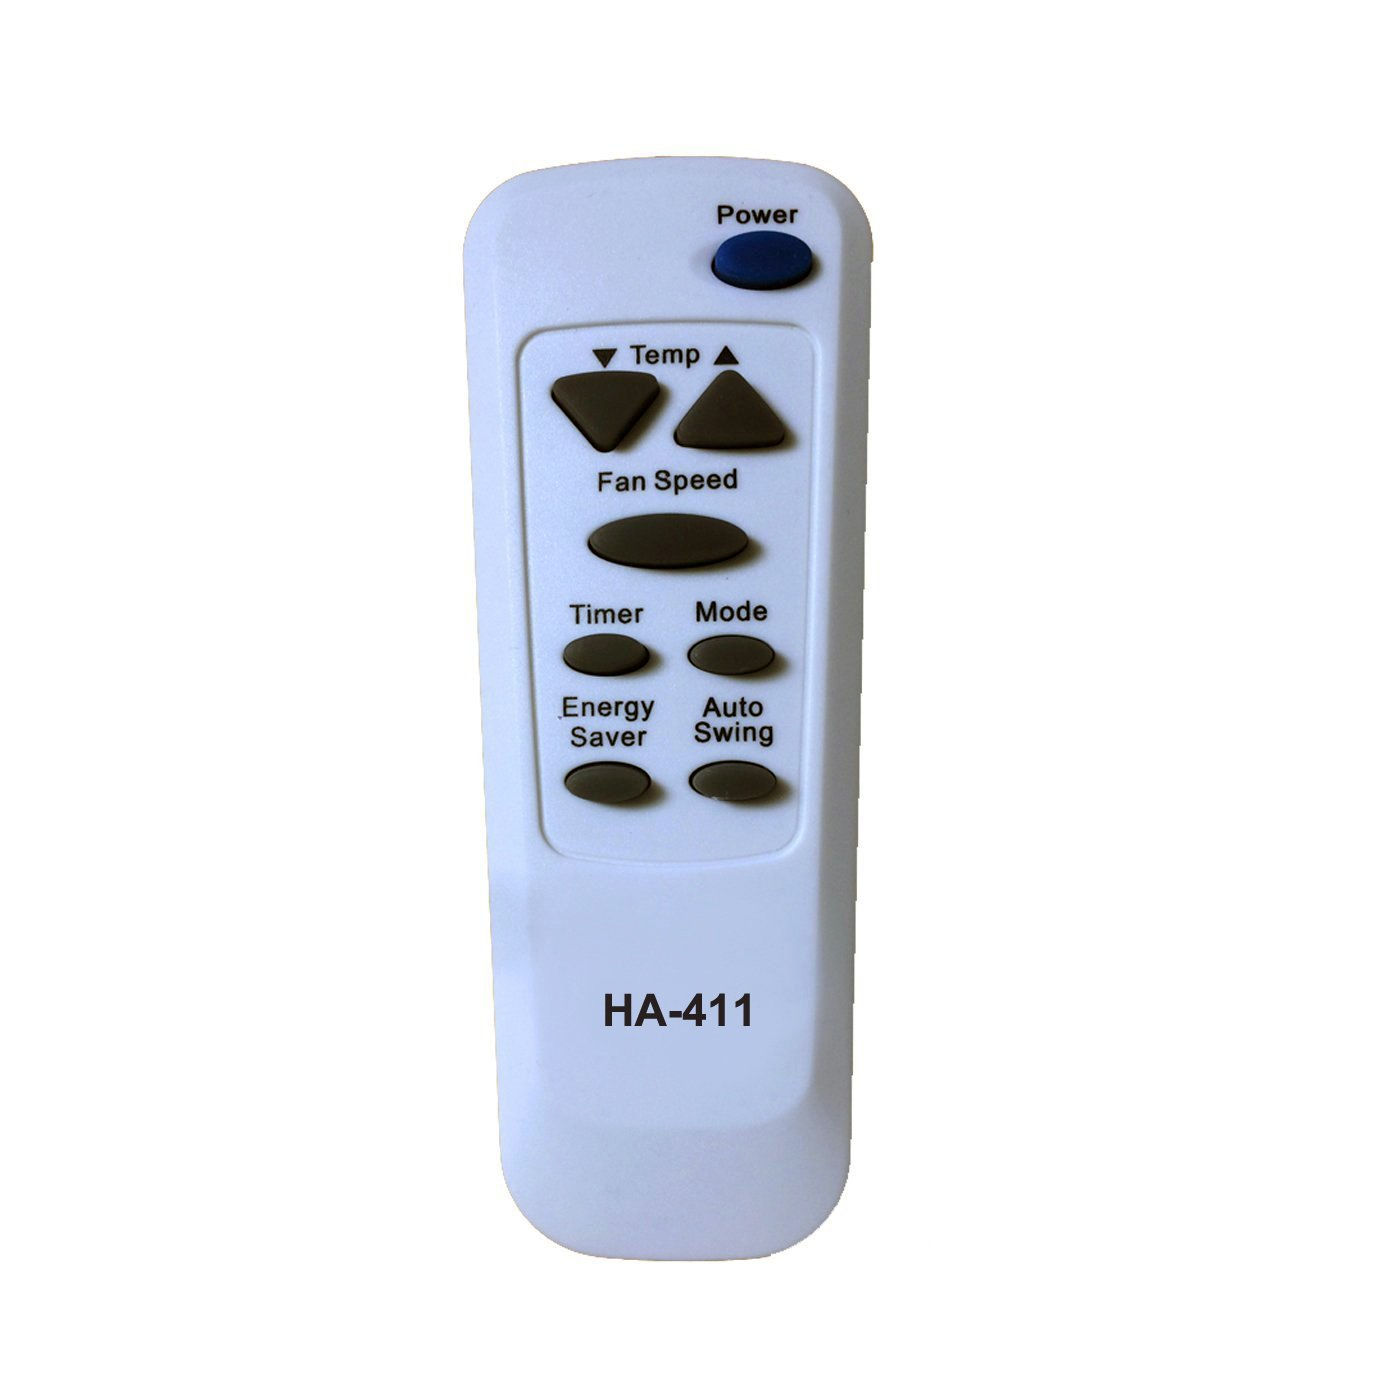 HA-411 Replacement for kenmore Air Conditioner Remote Control 6711A20089C Works for 580.75080 580.75080500 580.75100 580.75100500 580.75180 580.75180500 580.75180501 580.75180700 580.76100 by Generic (Image #1)